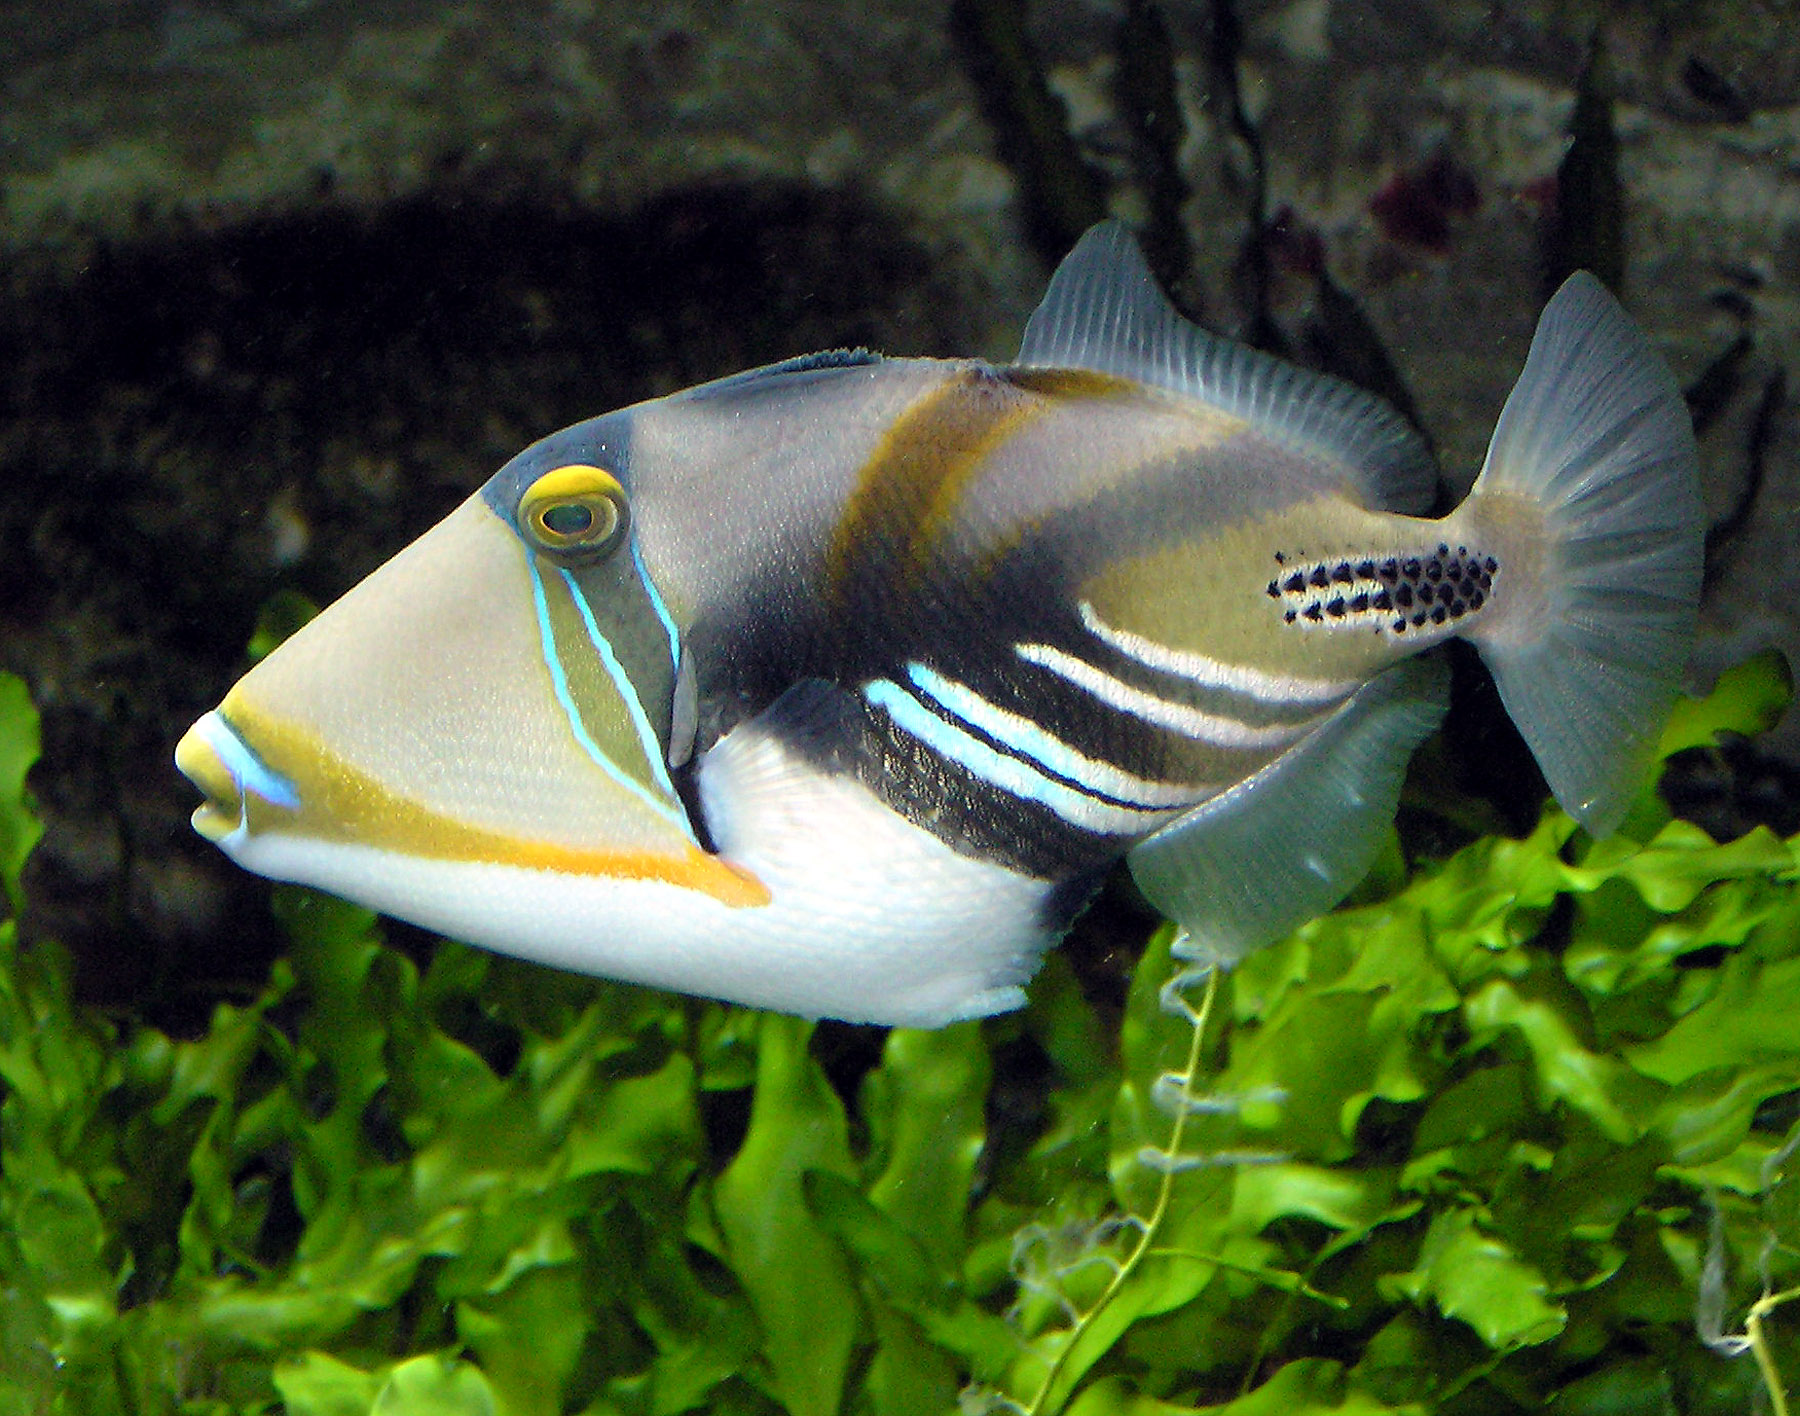 Picasso-Triggerfish-http-wallpho-tk-picasso-triggerfish-html-wallpaper-wp3009463